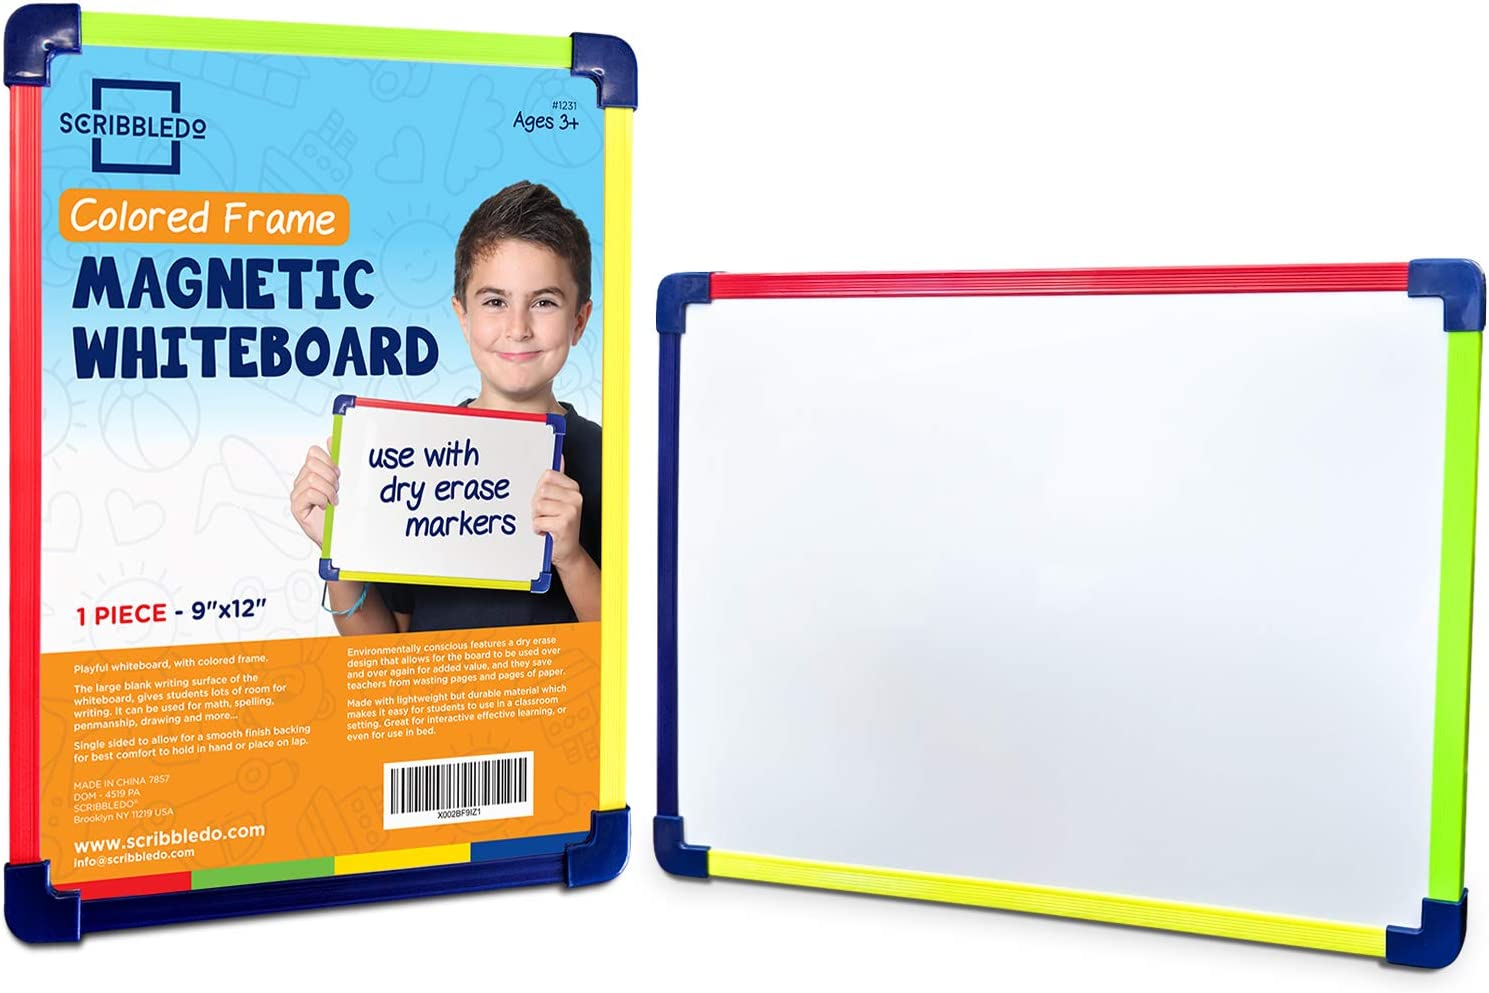 "Scribbledo Colored Frame Magnetic Dry Erase White Board 9"" X 12"" Whiteboard (Does Not Connect to Fridge)"